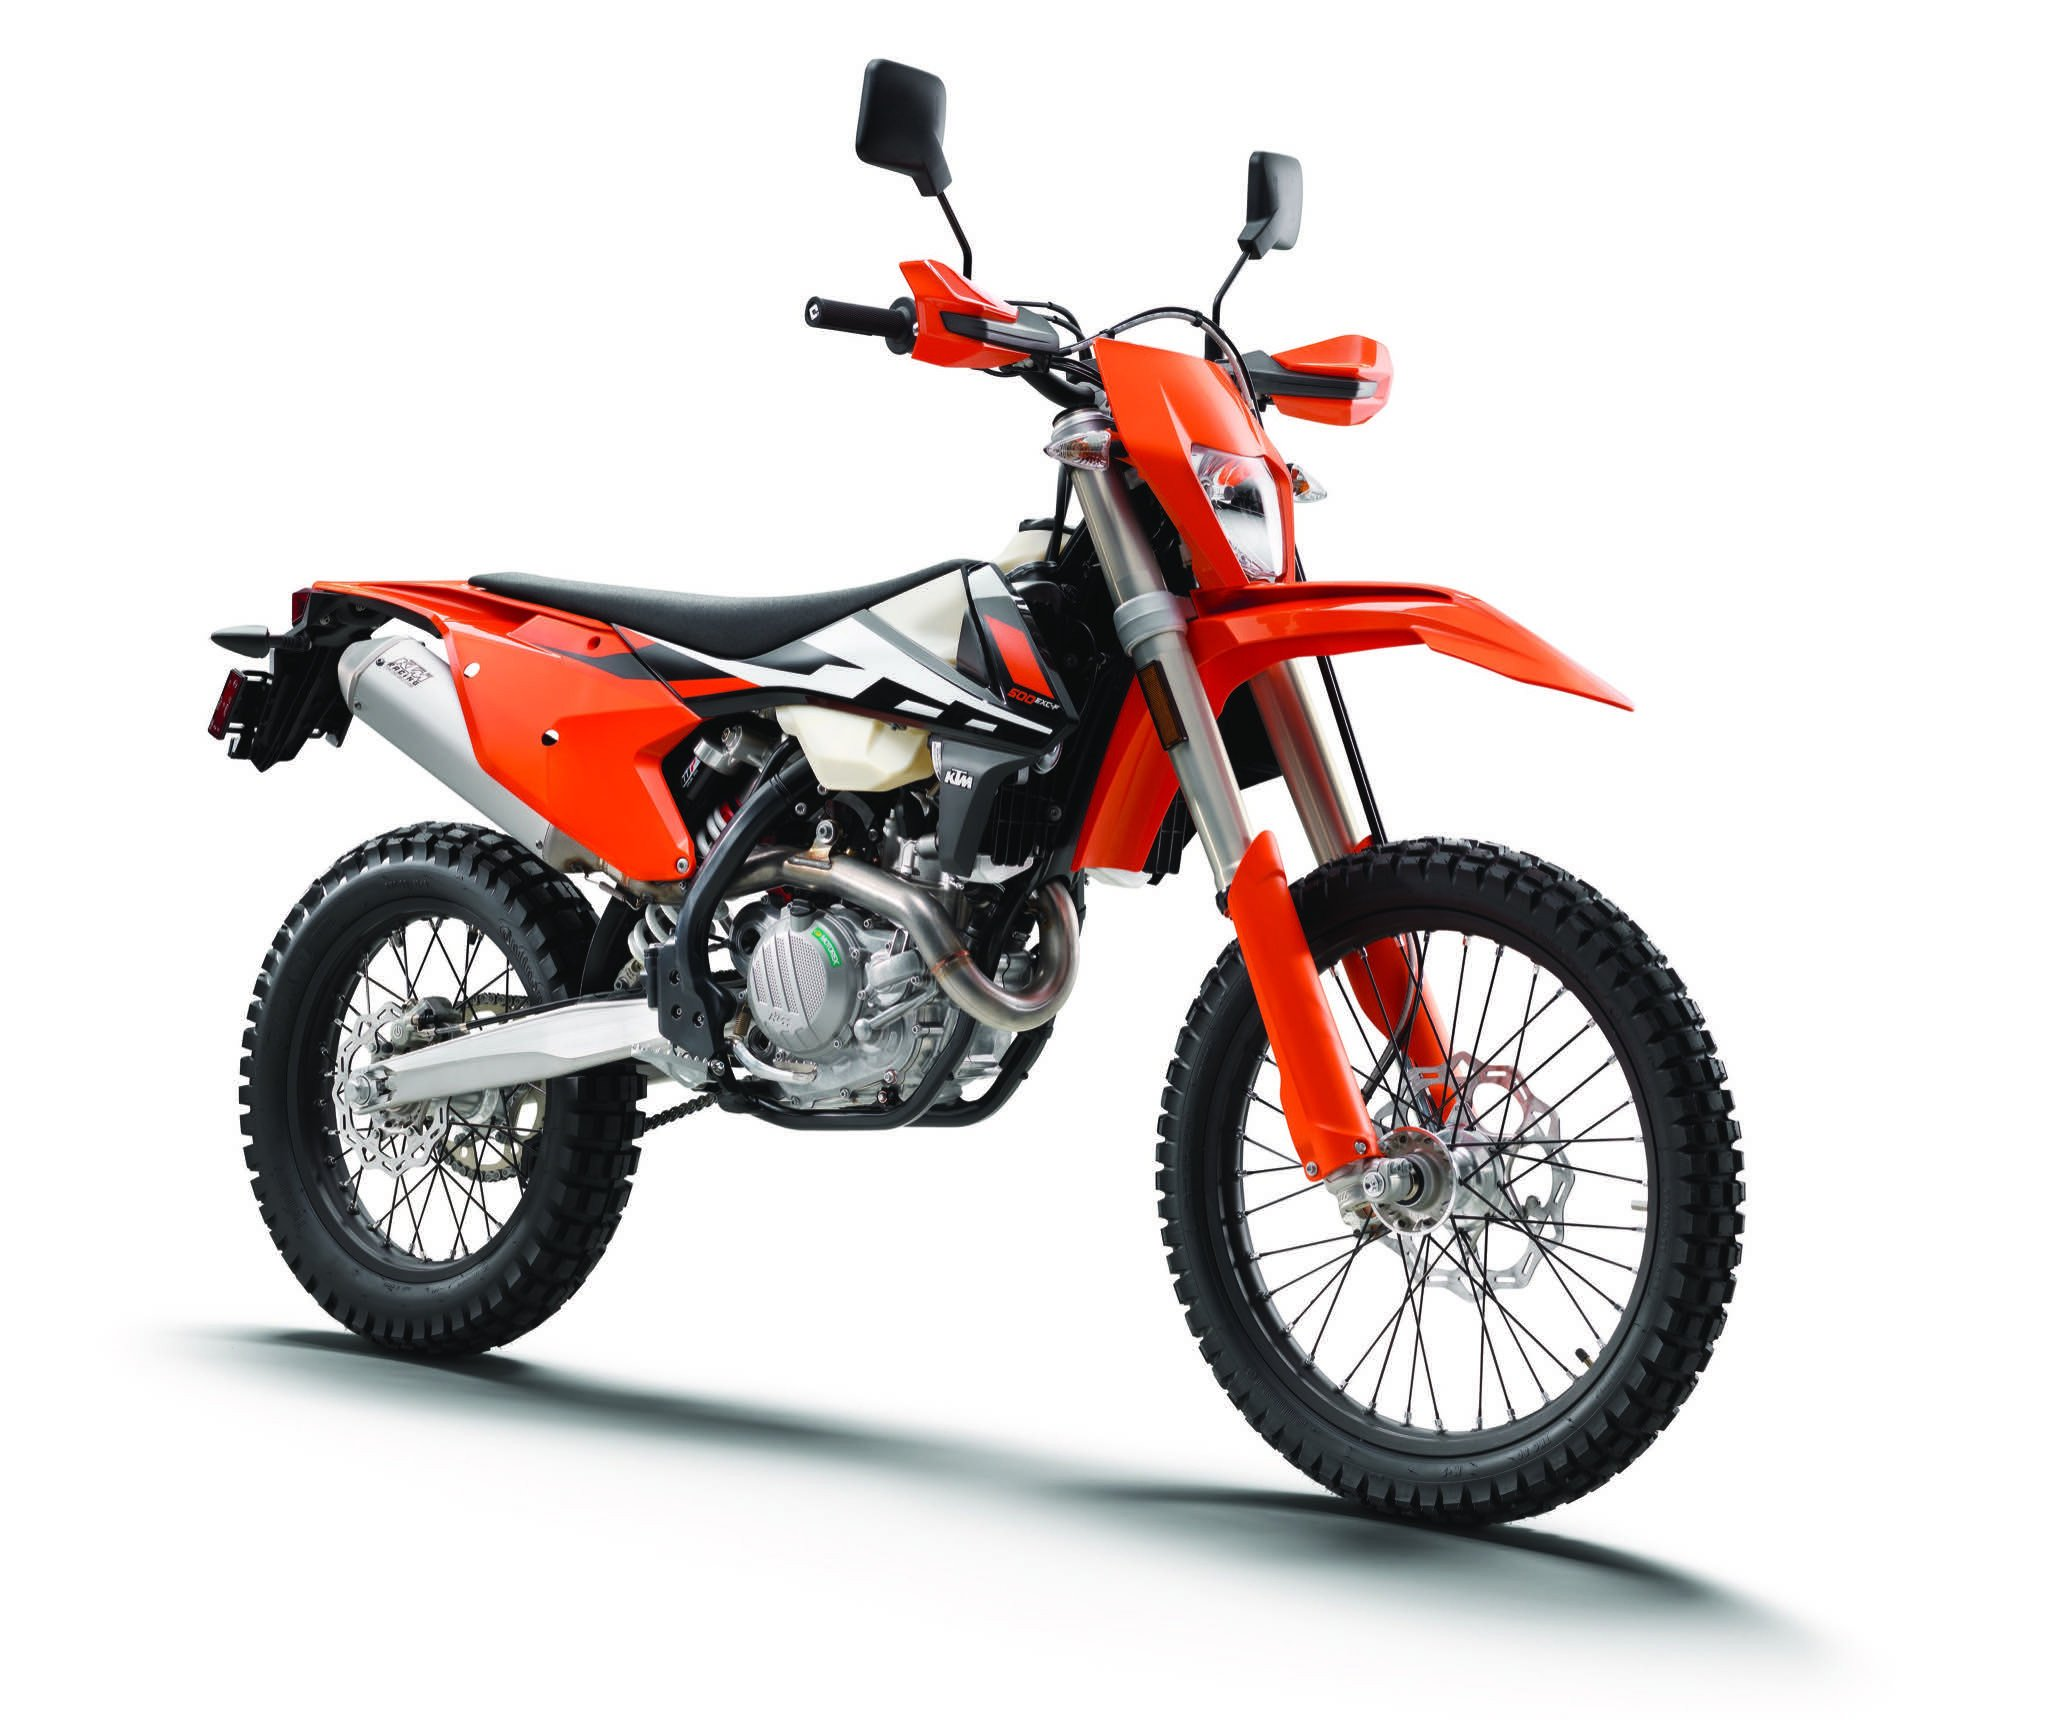 2017_KTM_500_EXC_USA_front_right_studio_Motorcycle_Central_Florida_PowerSports.jpg